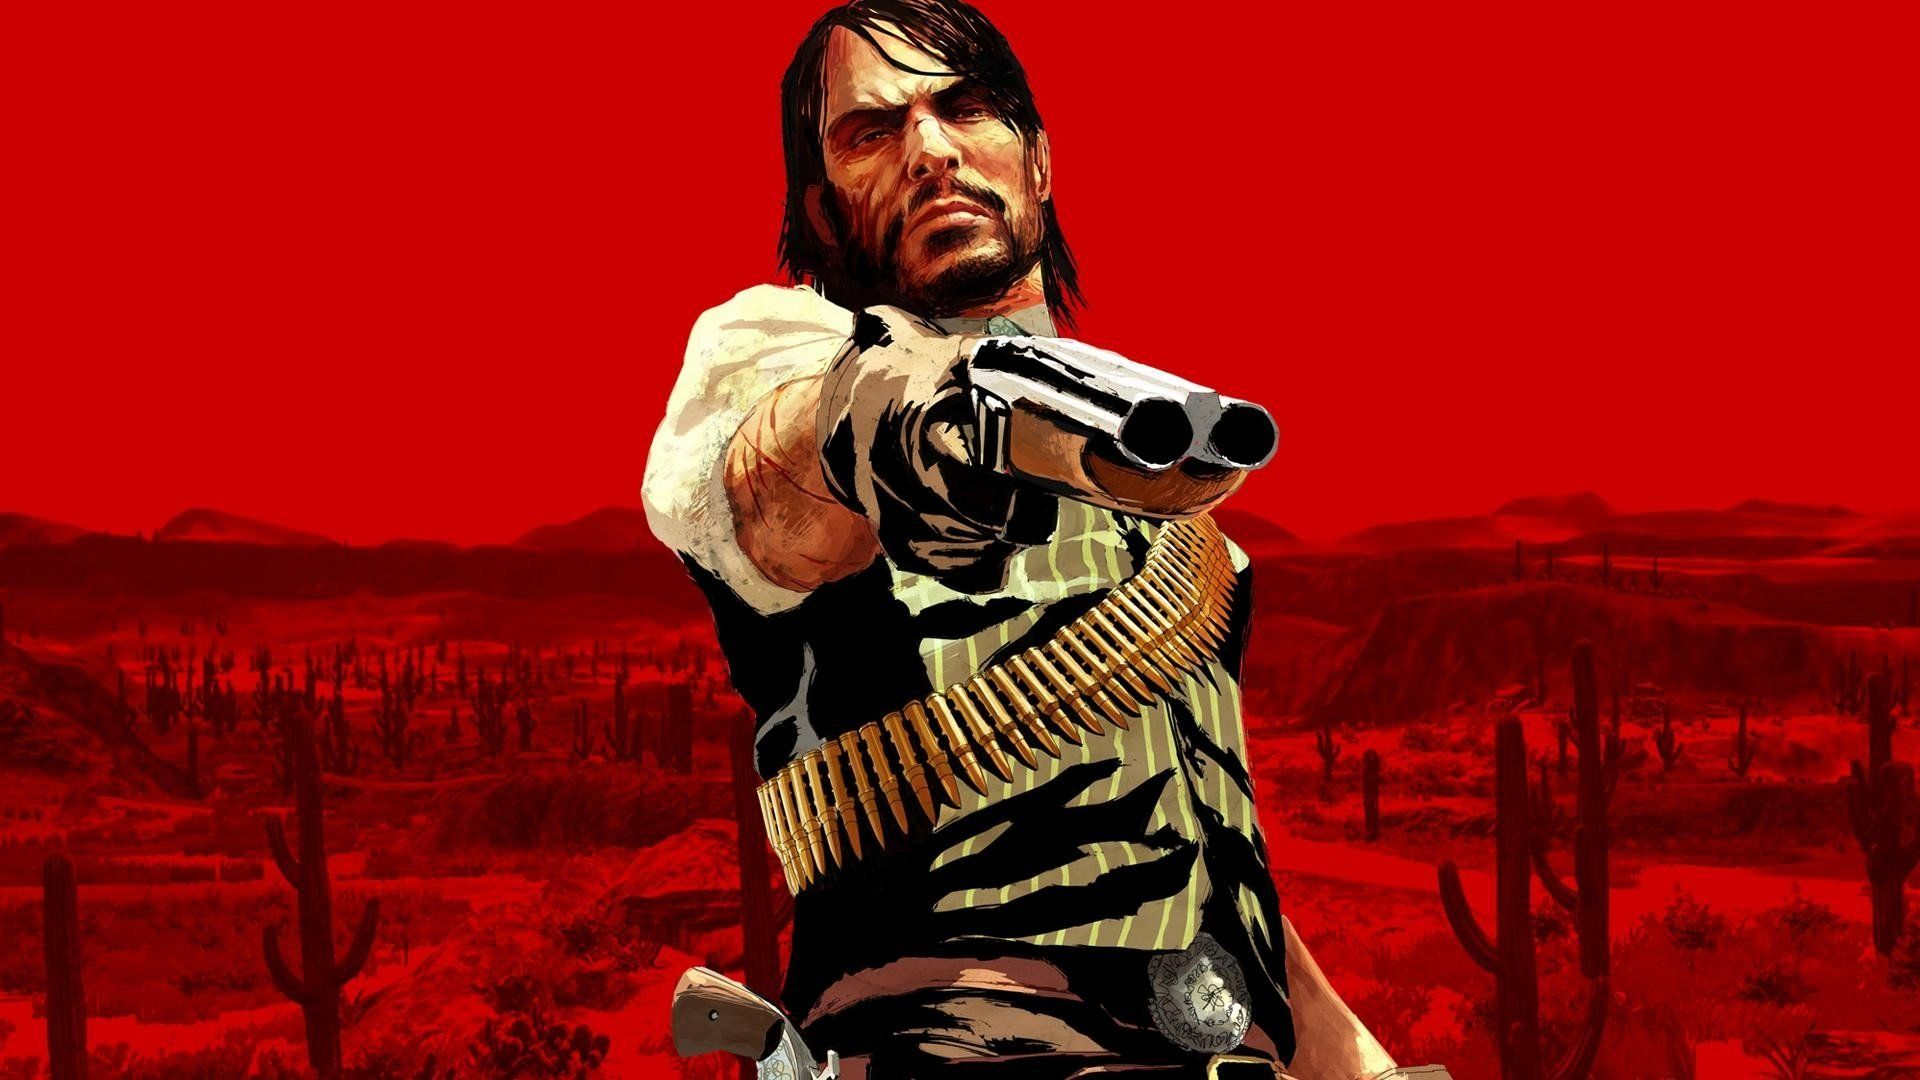 Red Dead Redemption Wallpapers Top Free Red Dead Redemption